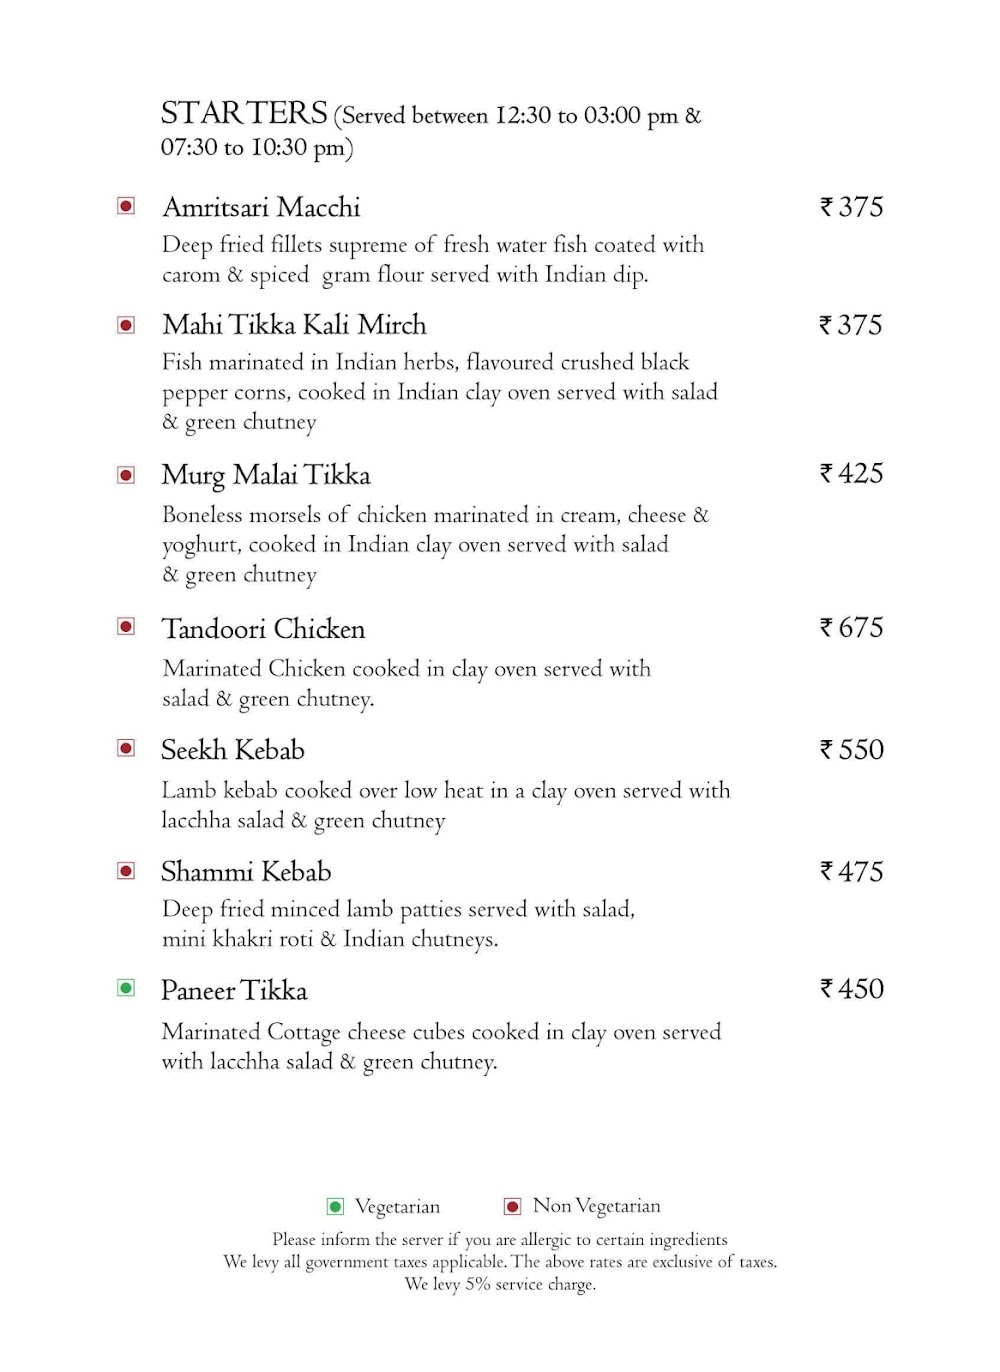 Branche - Golden Tulip Suites menu 13